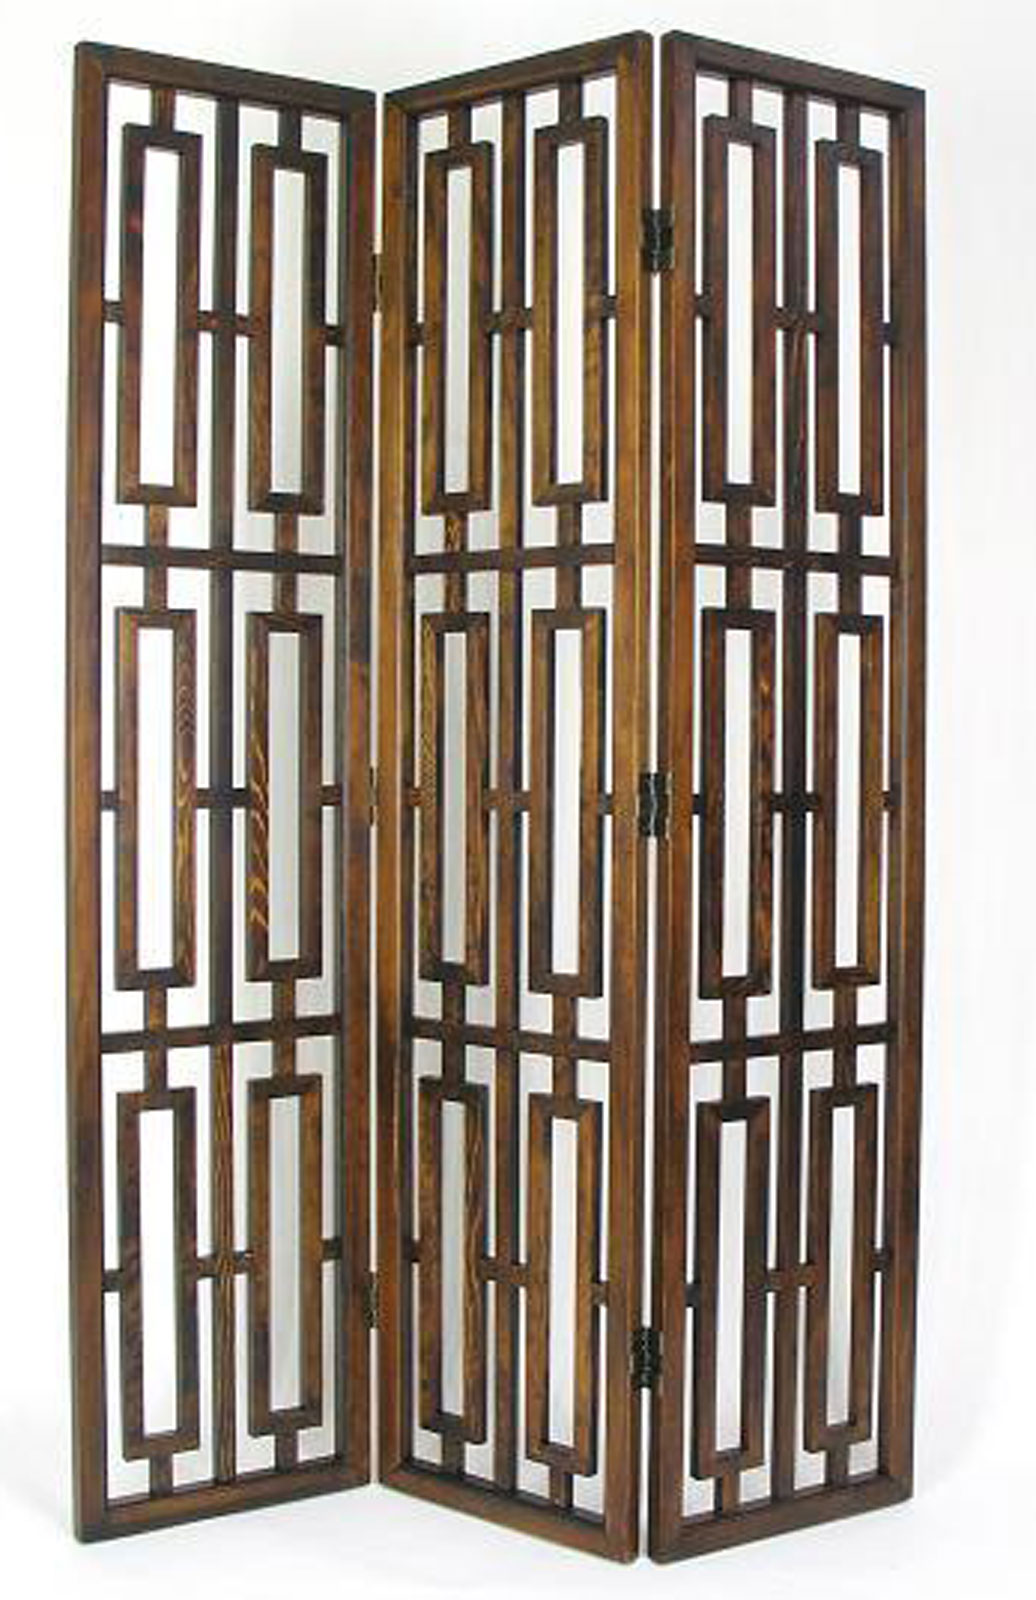 Room divider screen in room dividers Decorative hanging room dividers